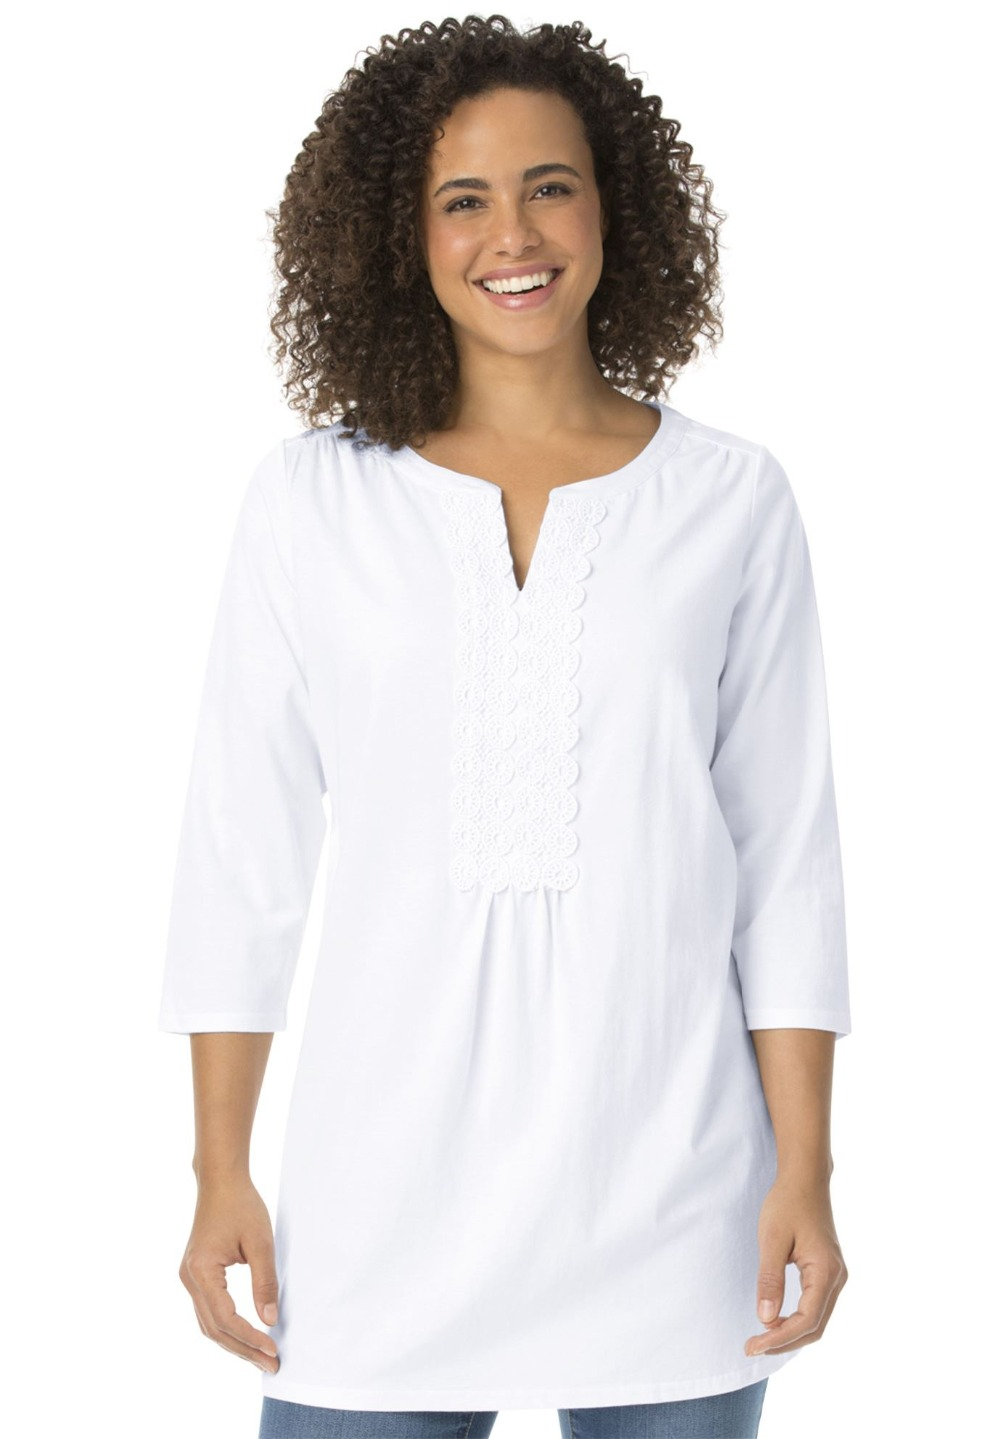 Tunics & Tunic Tops for Women. Make the next addition to your closet one of Free People's comfortable and versatile tunics for women. They come in a variety of colors and lengths to fit any occasion, like long tunic tops or tunic dresses.